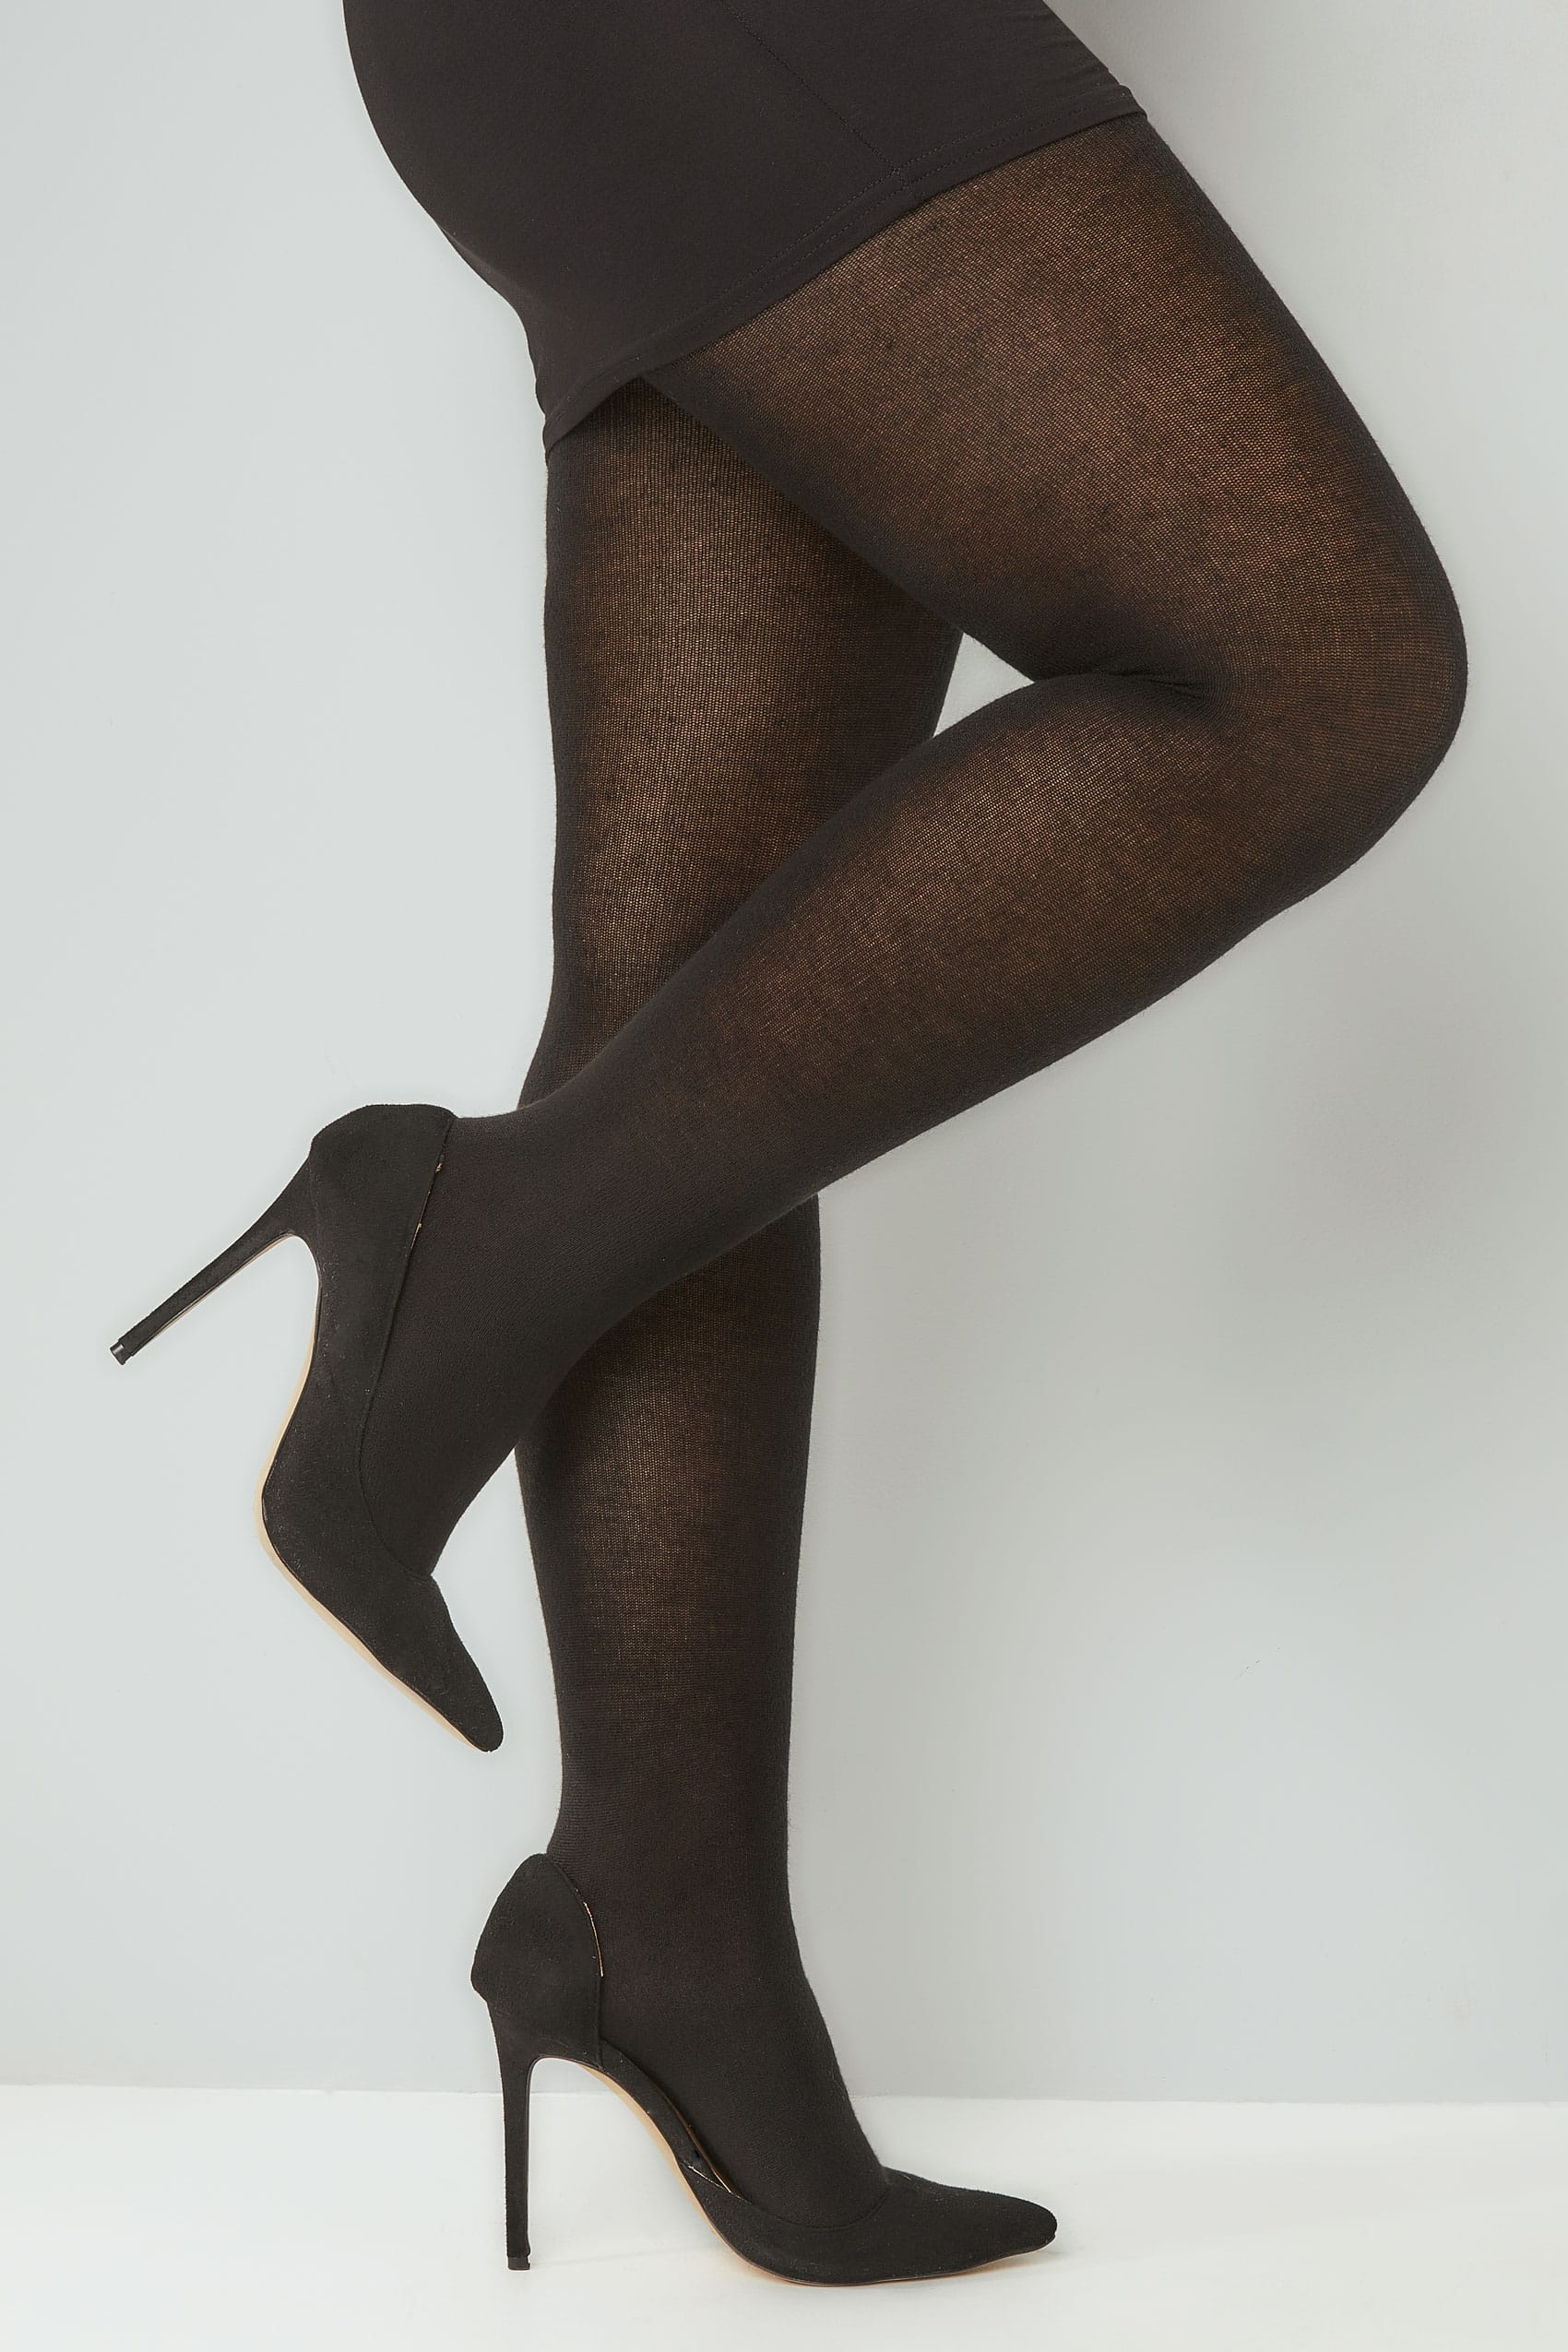 760a7f88fe2e8 Black 200 Denier Super Soft Thick Tights Plus Size 16 to 32